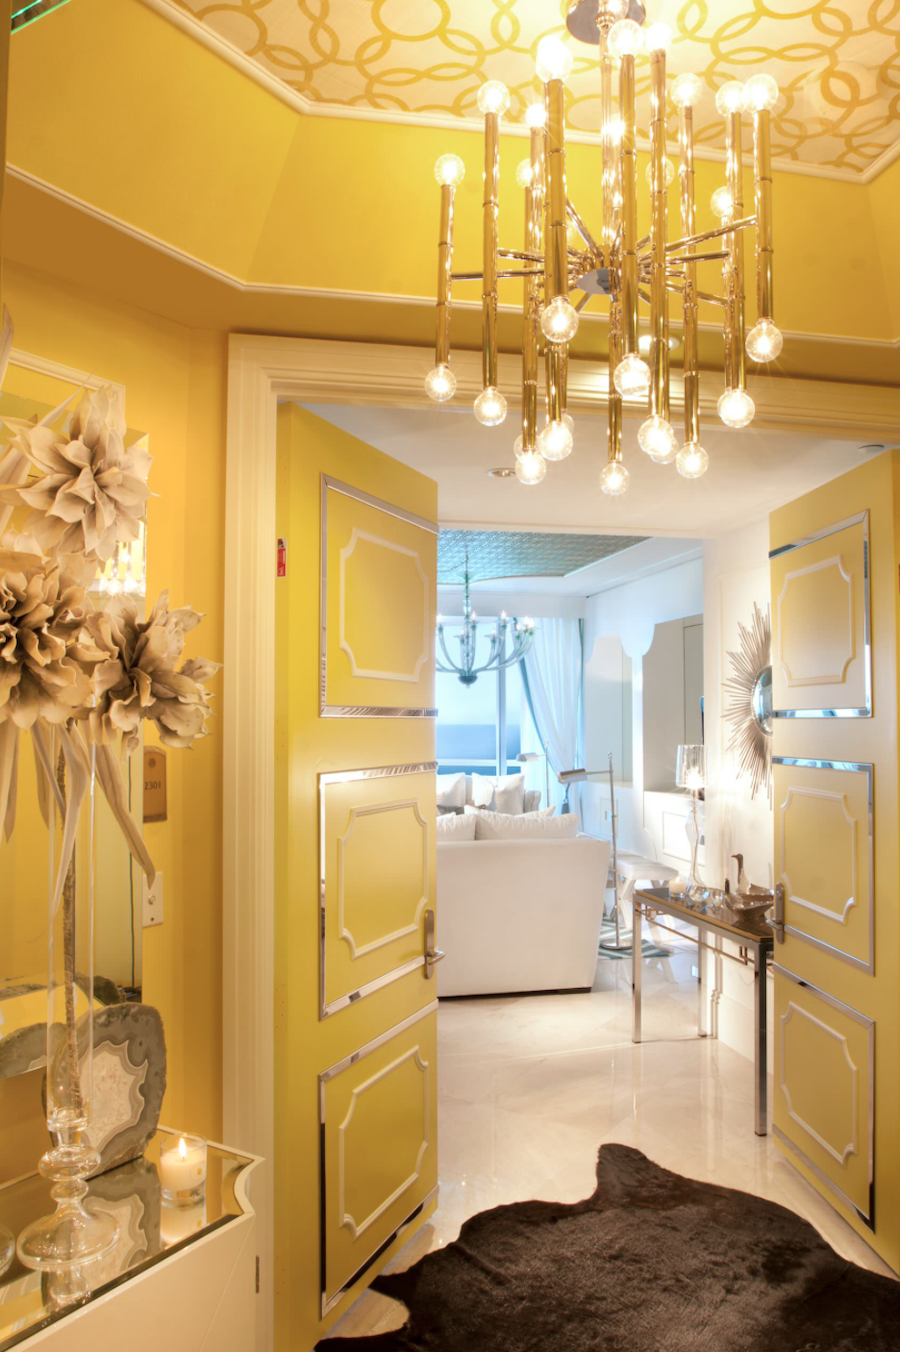 illuminating yellow hallway with patterned wallpaper ceiling